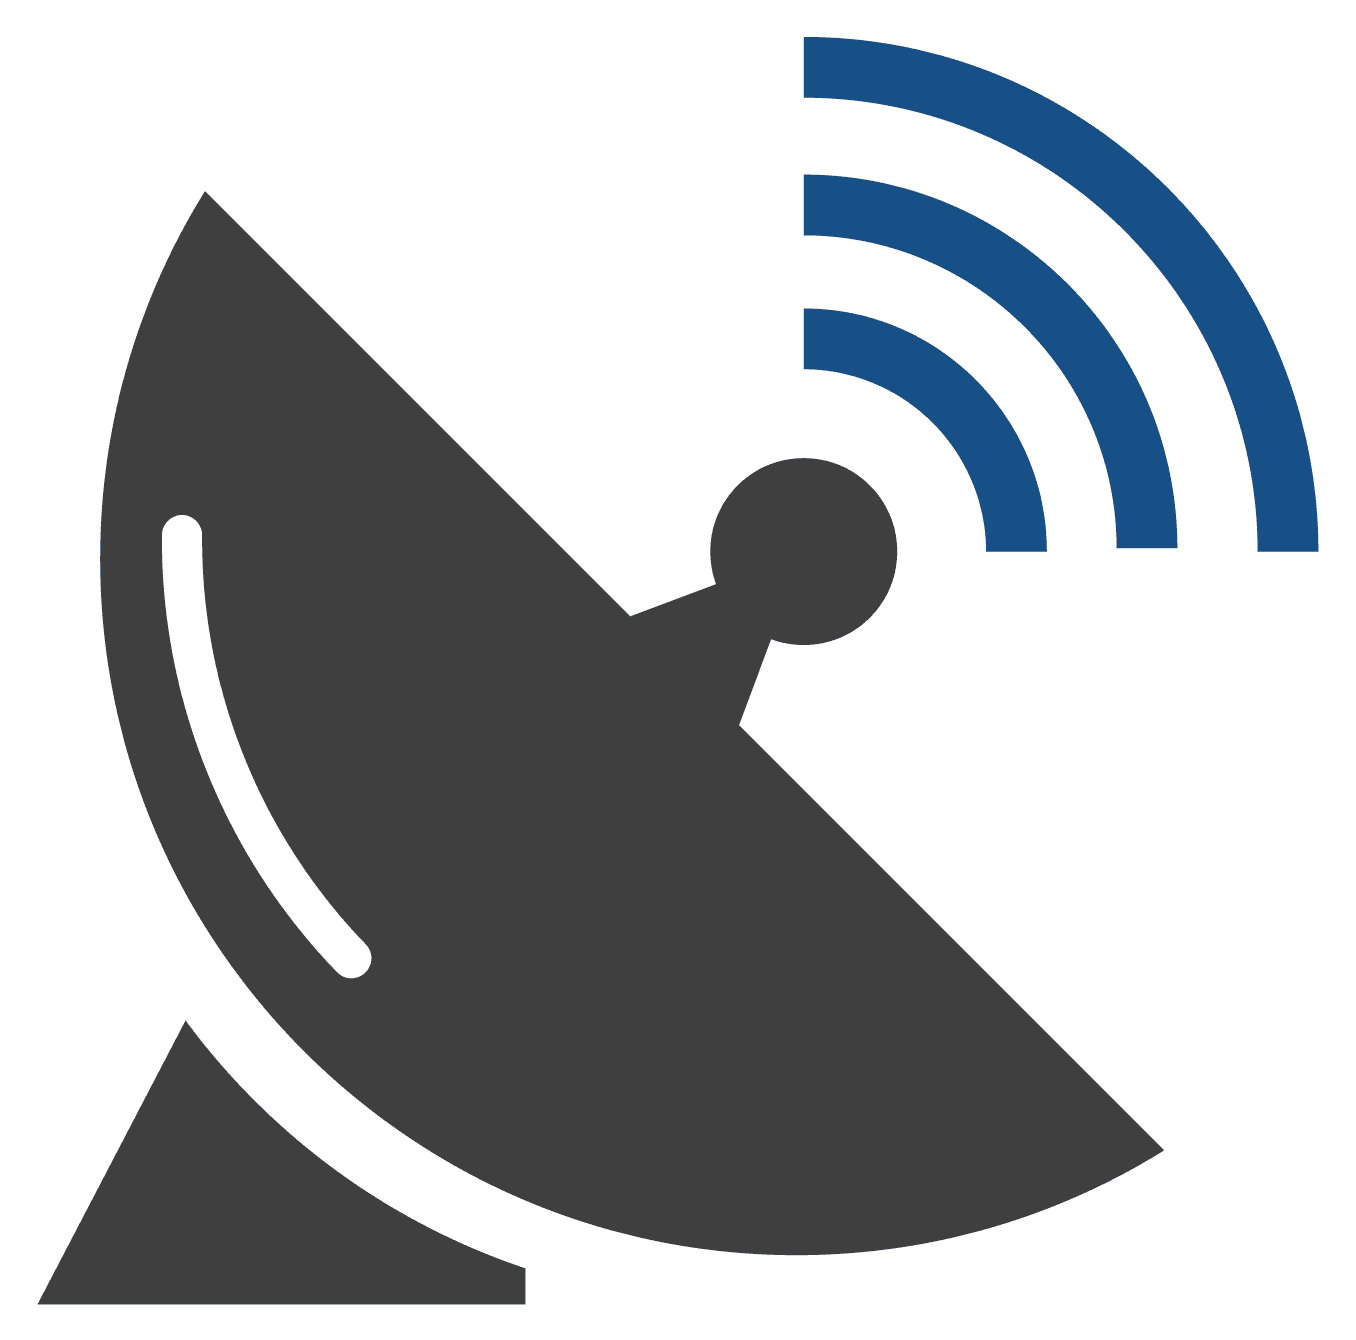 icona antenna satellitare